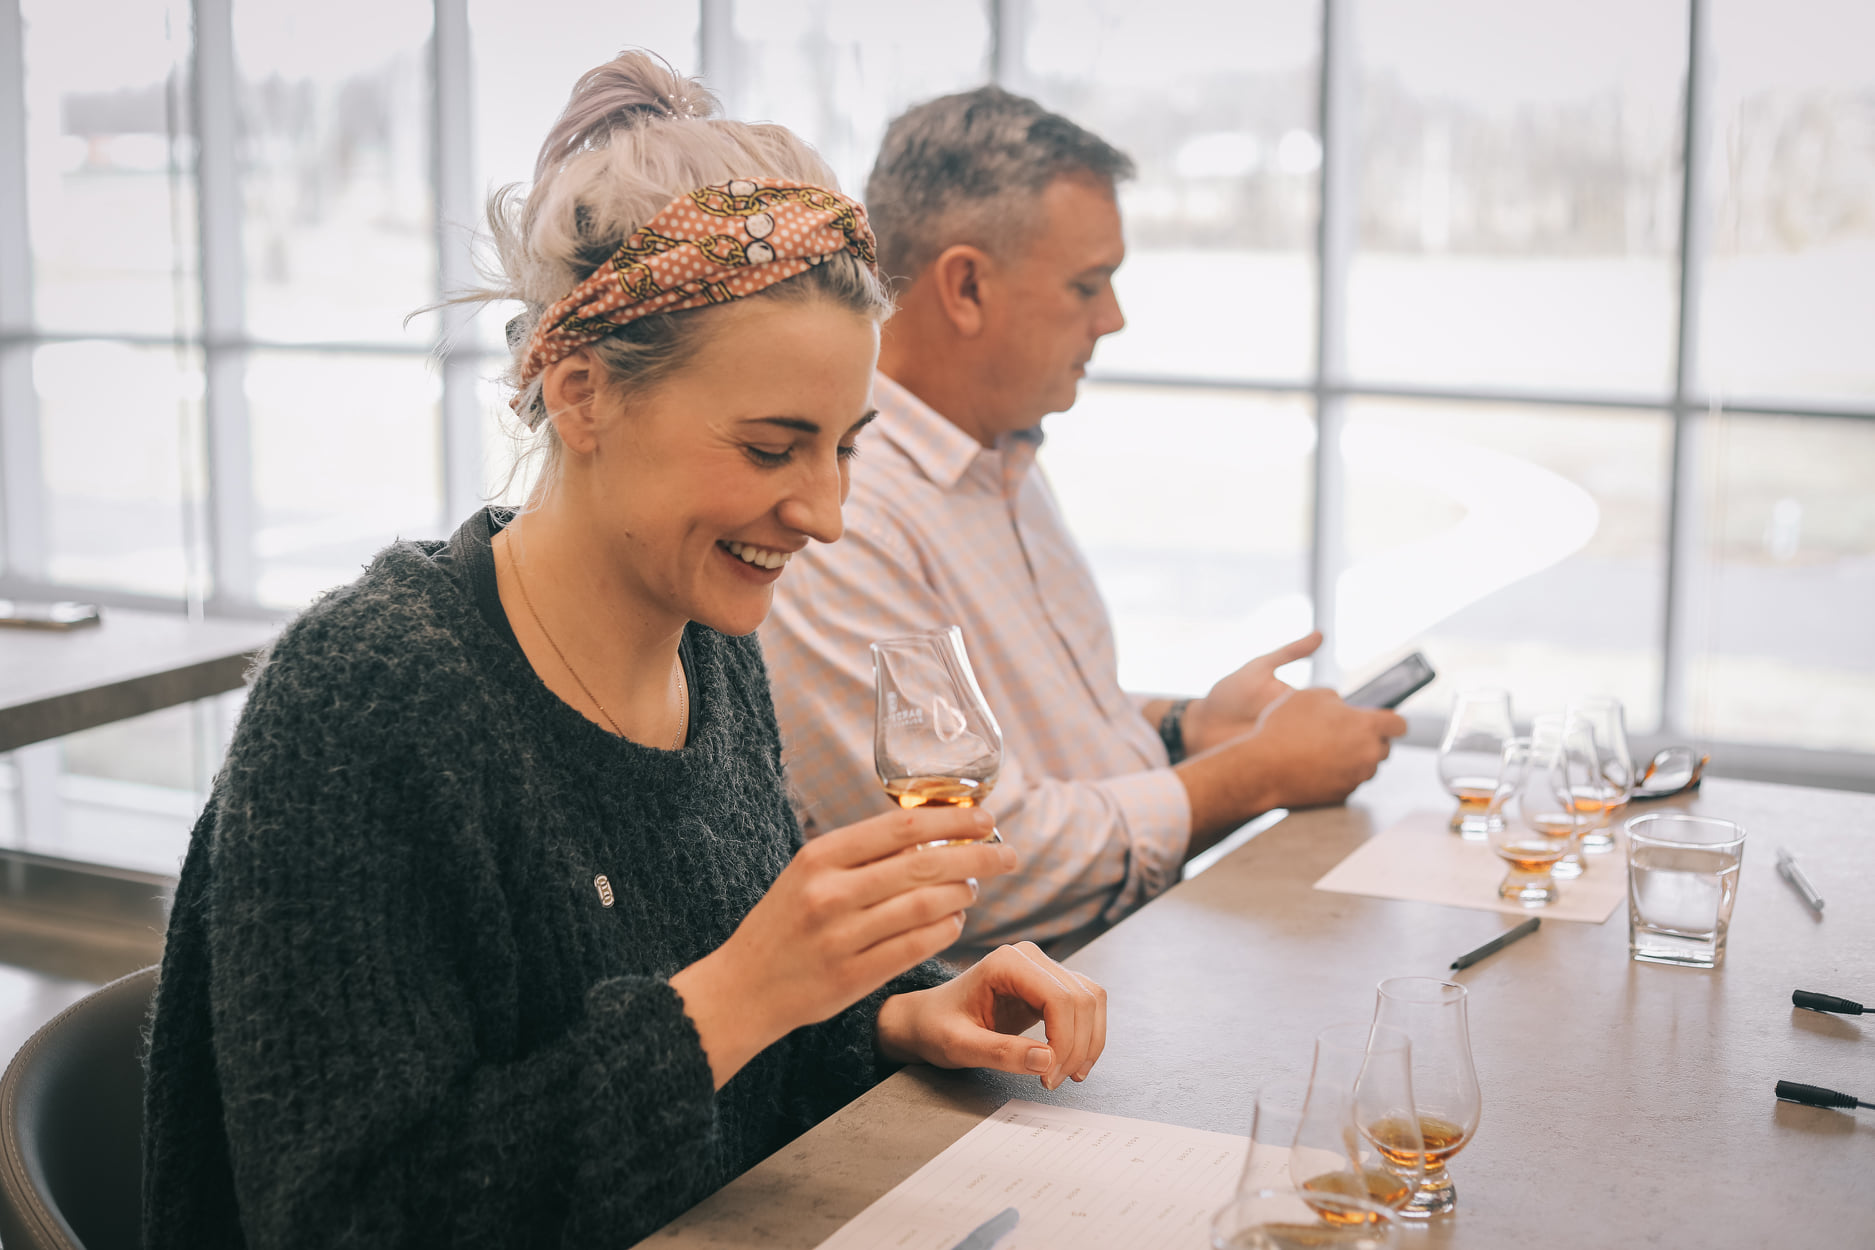 BBC Whiskey Taster - Bardstown Bourbon Company unveils virtual event schedule for 'World's Top Whiskey Taster' competition